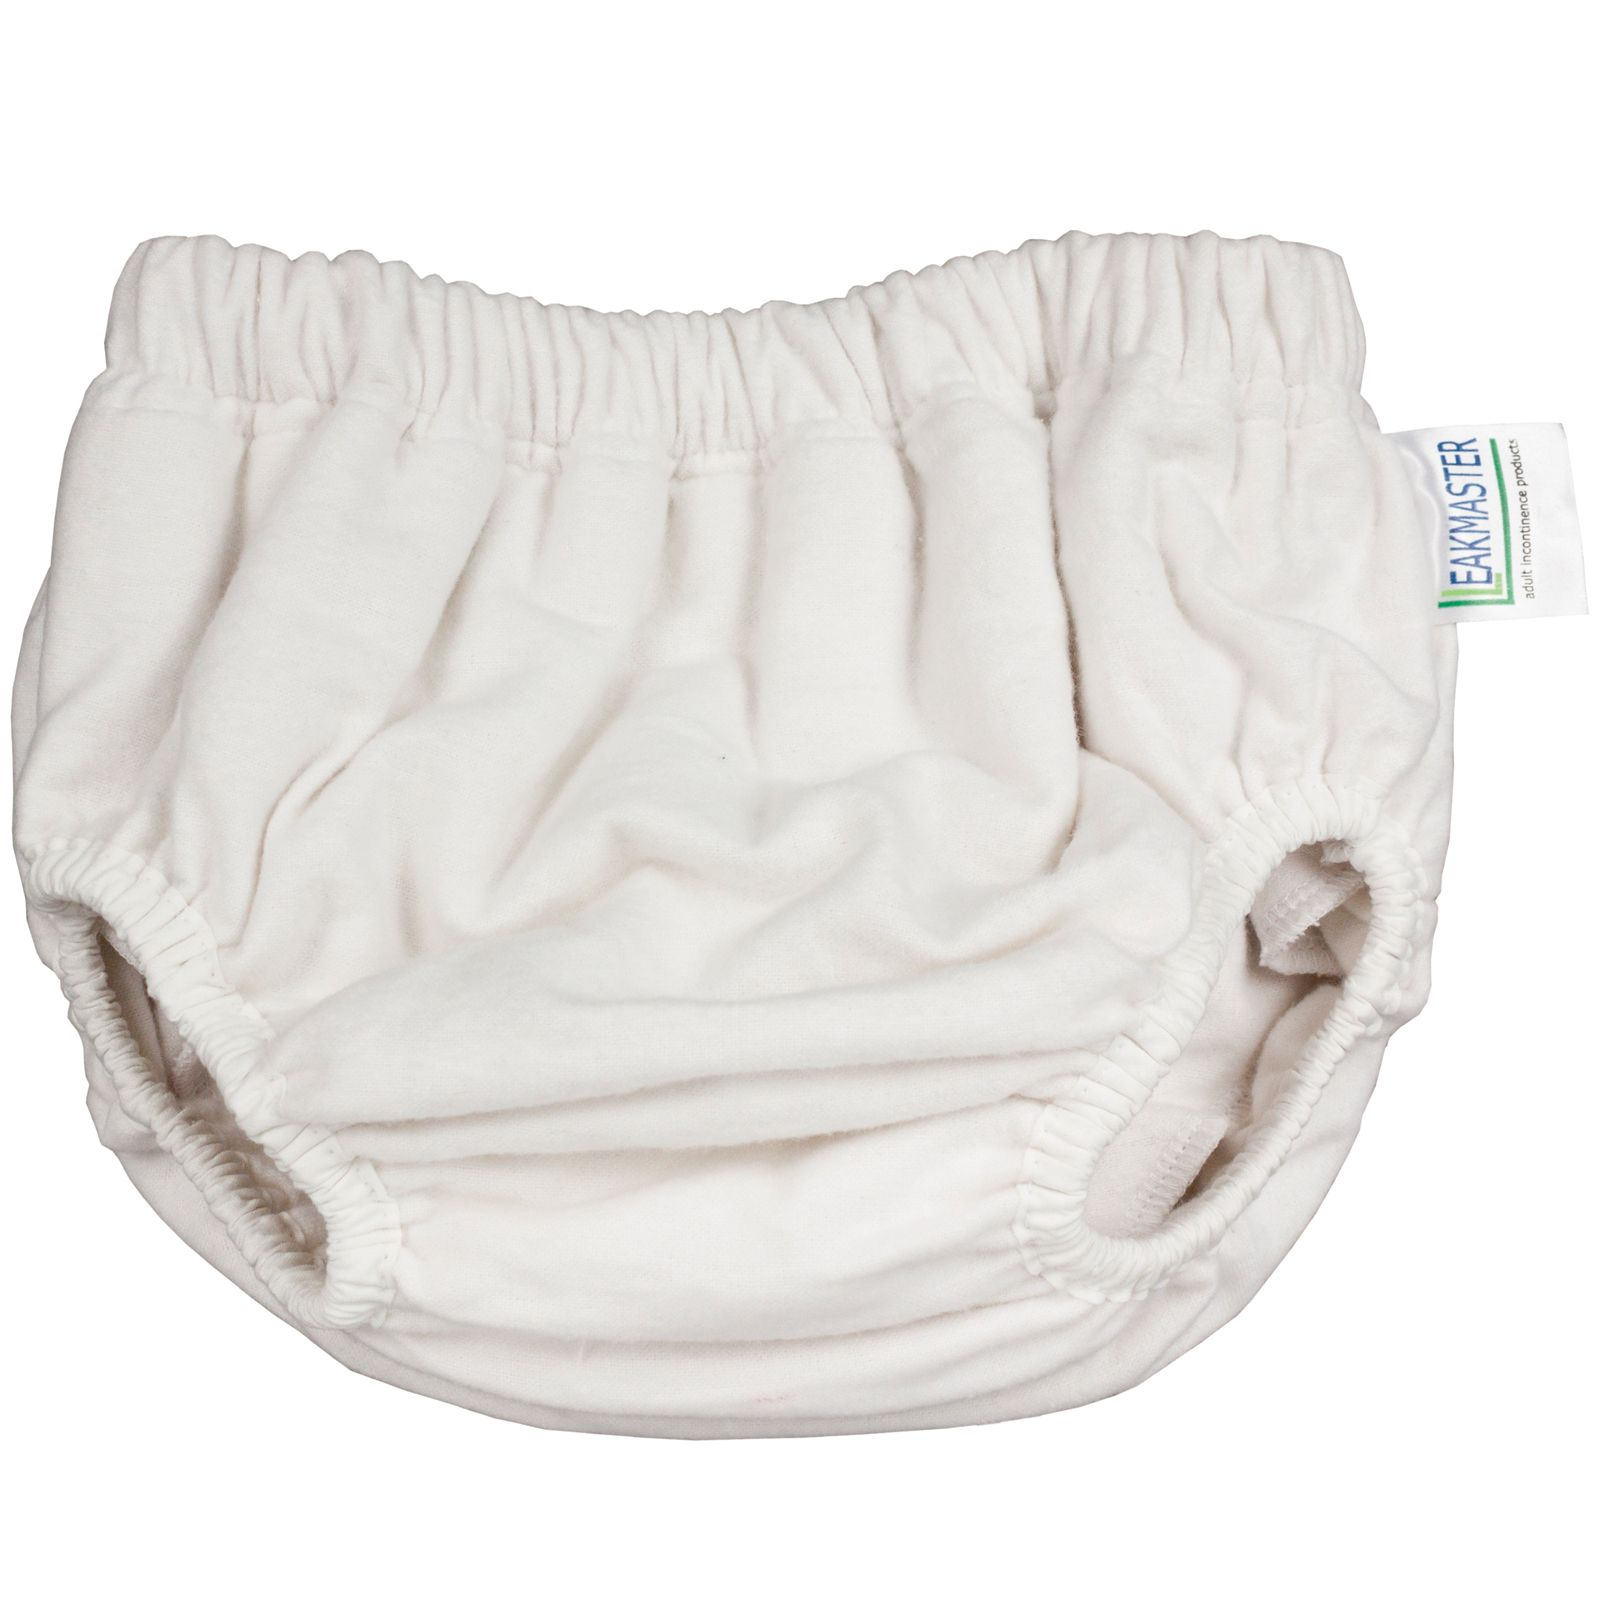 Seems me, Adult cloth diapers with